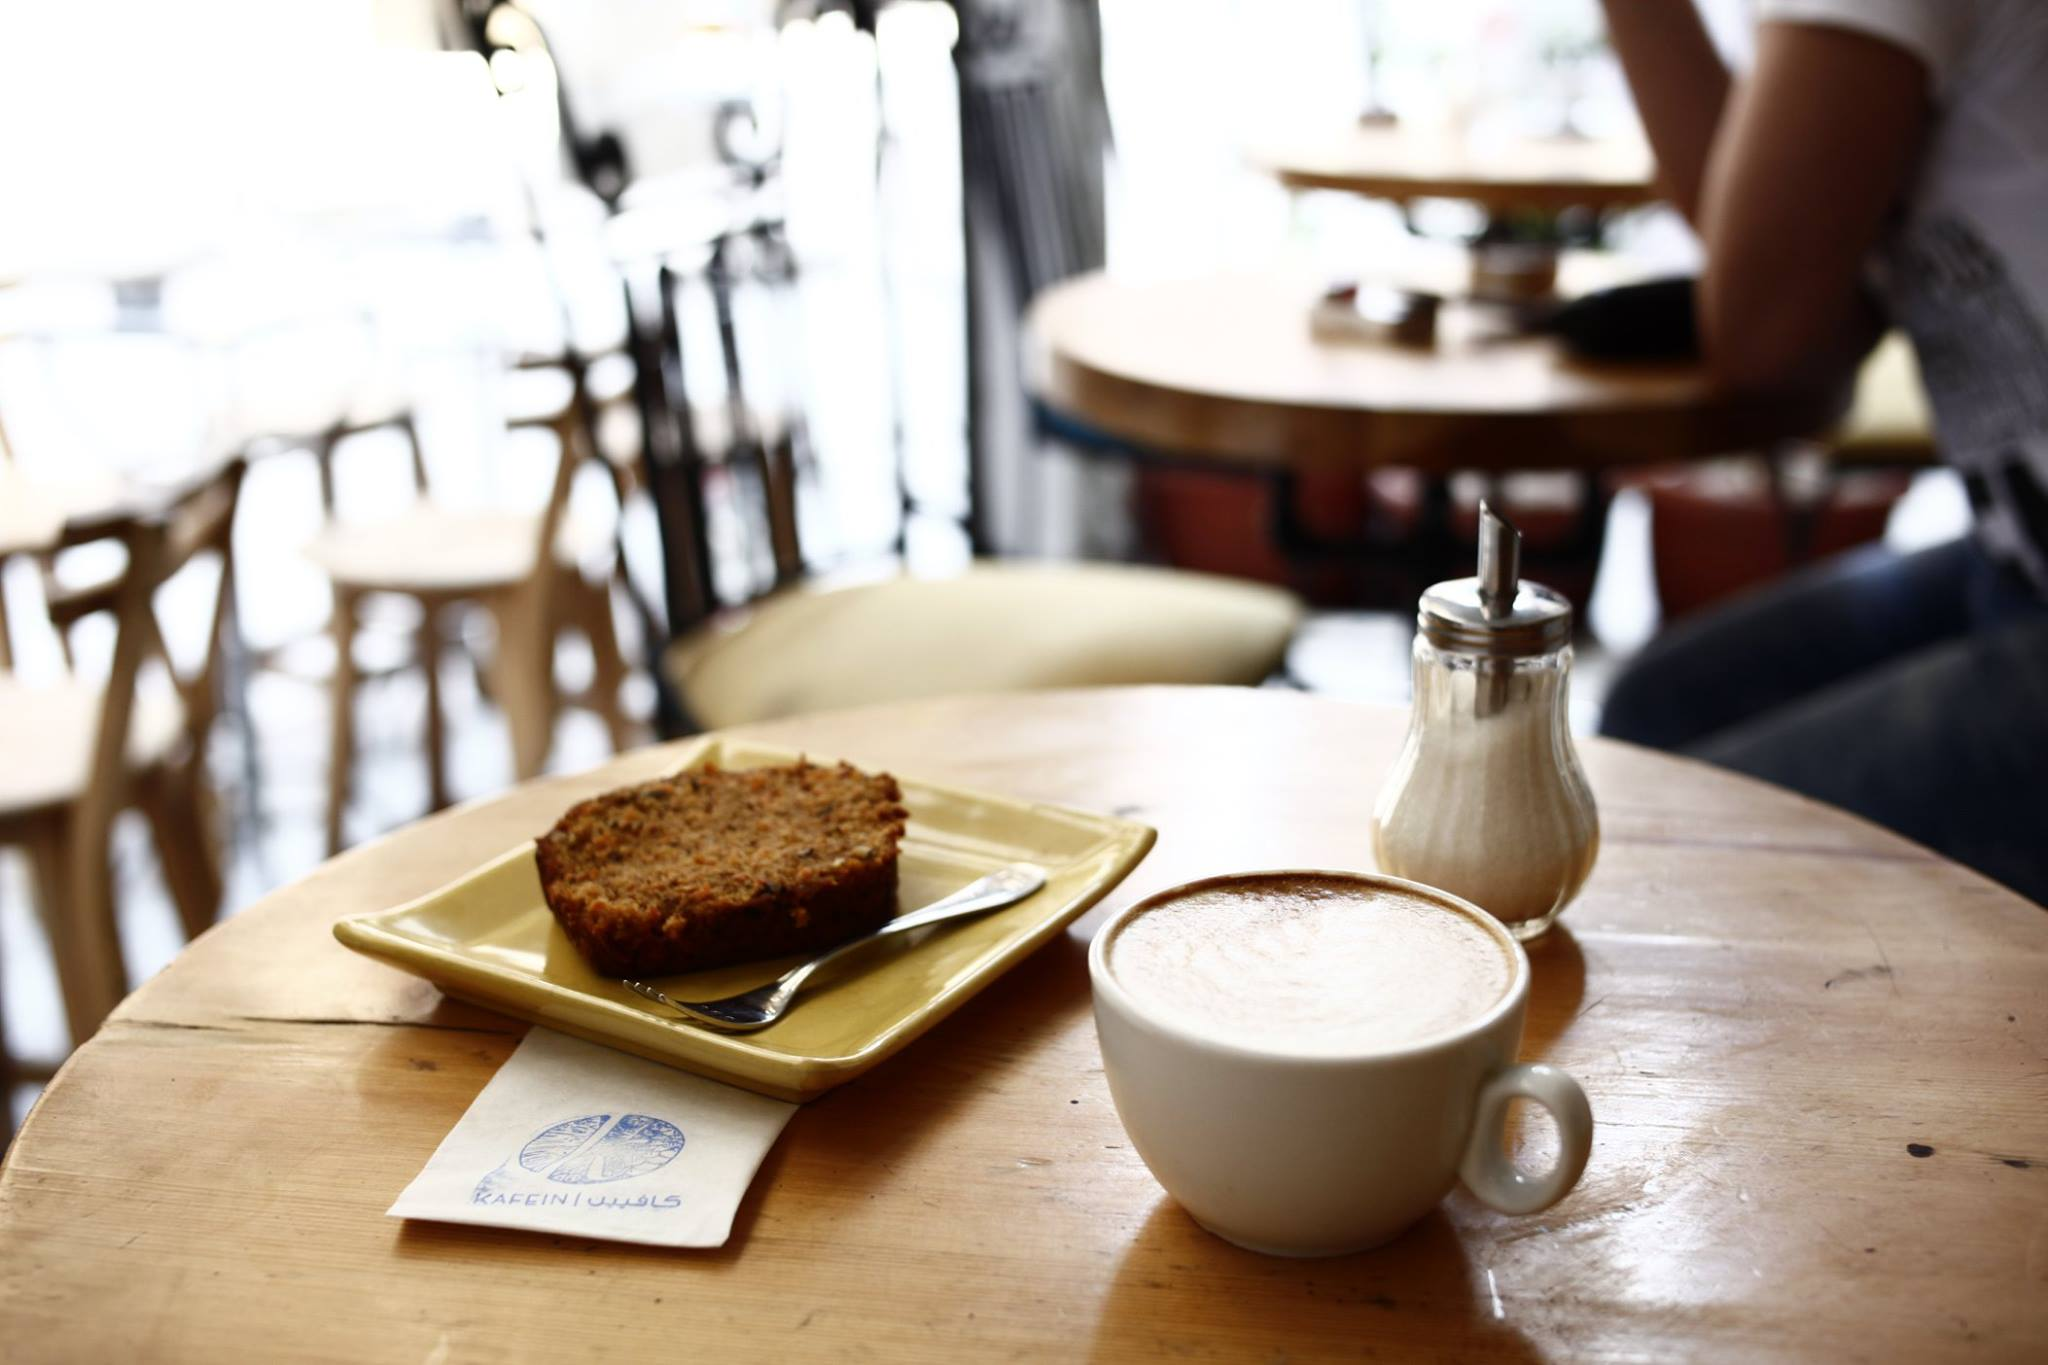 CAFES TO YOUR MORNING COFFEE IN CAIRO